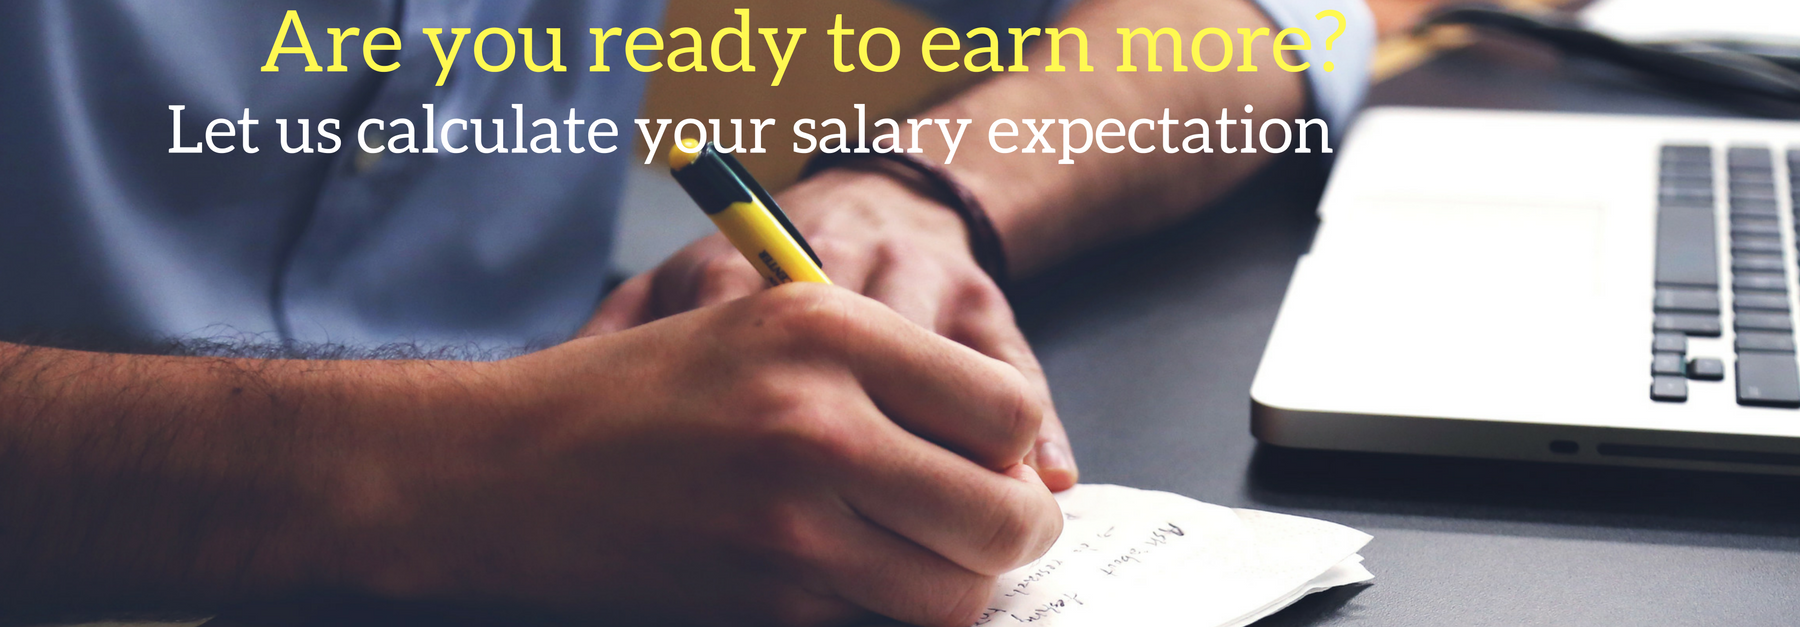 Let-us-calculate-your-salary-expectation-1